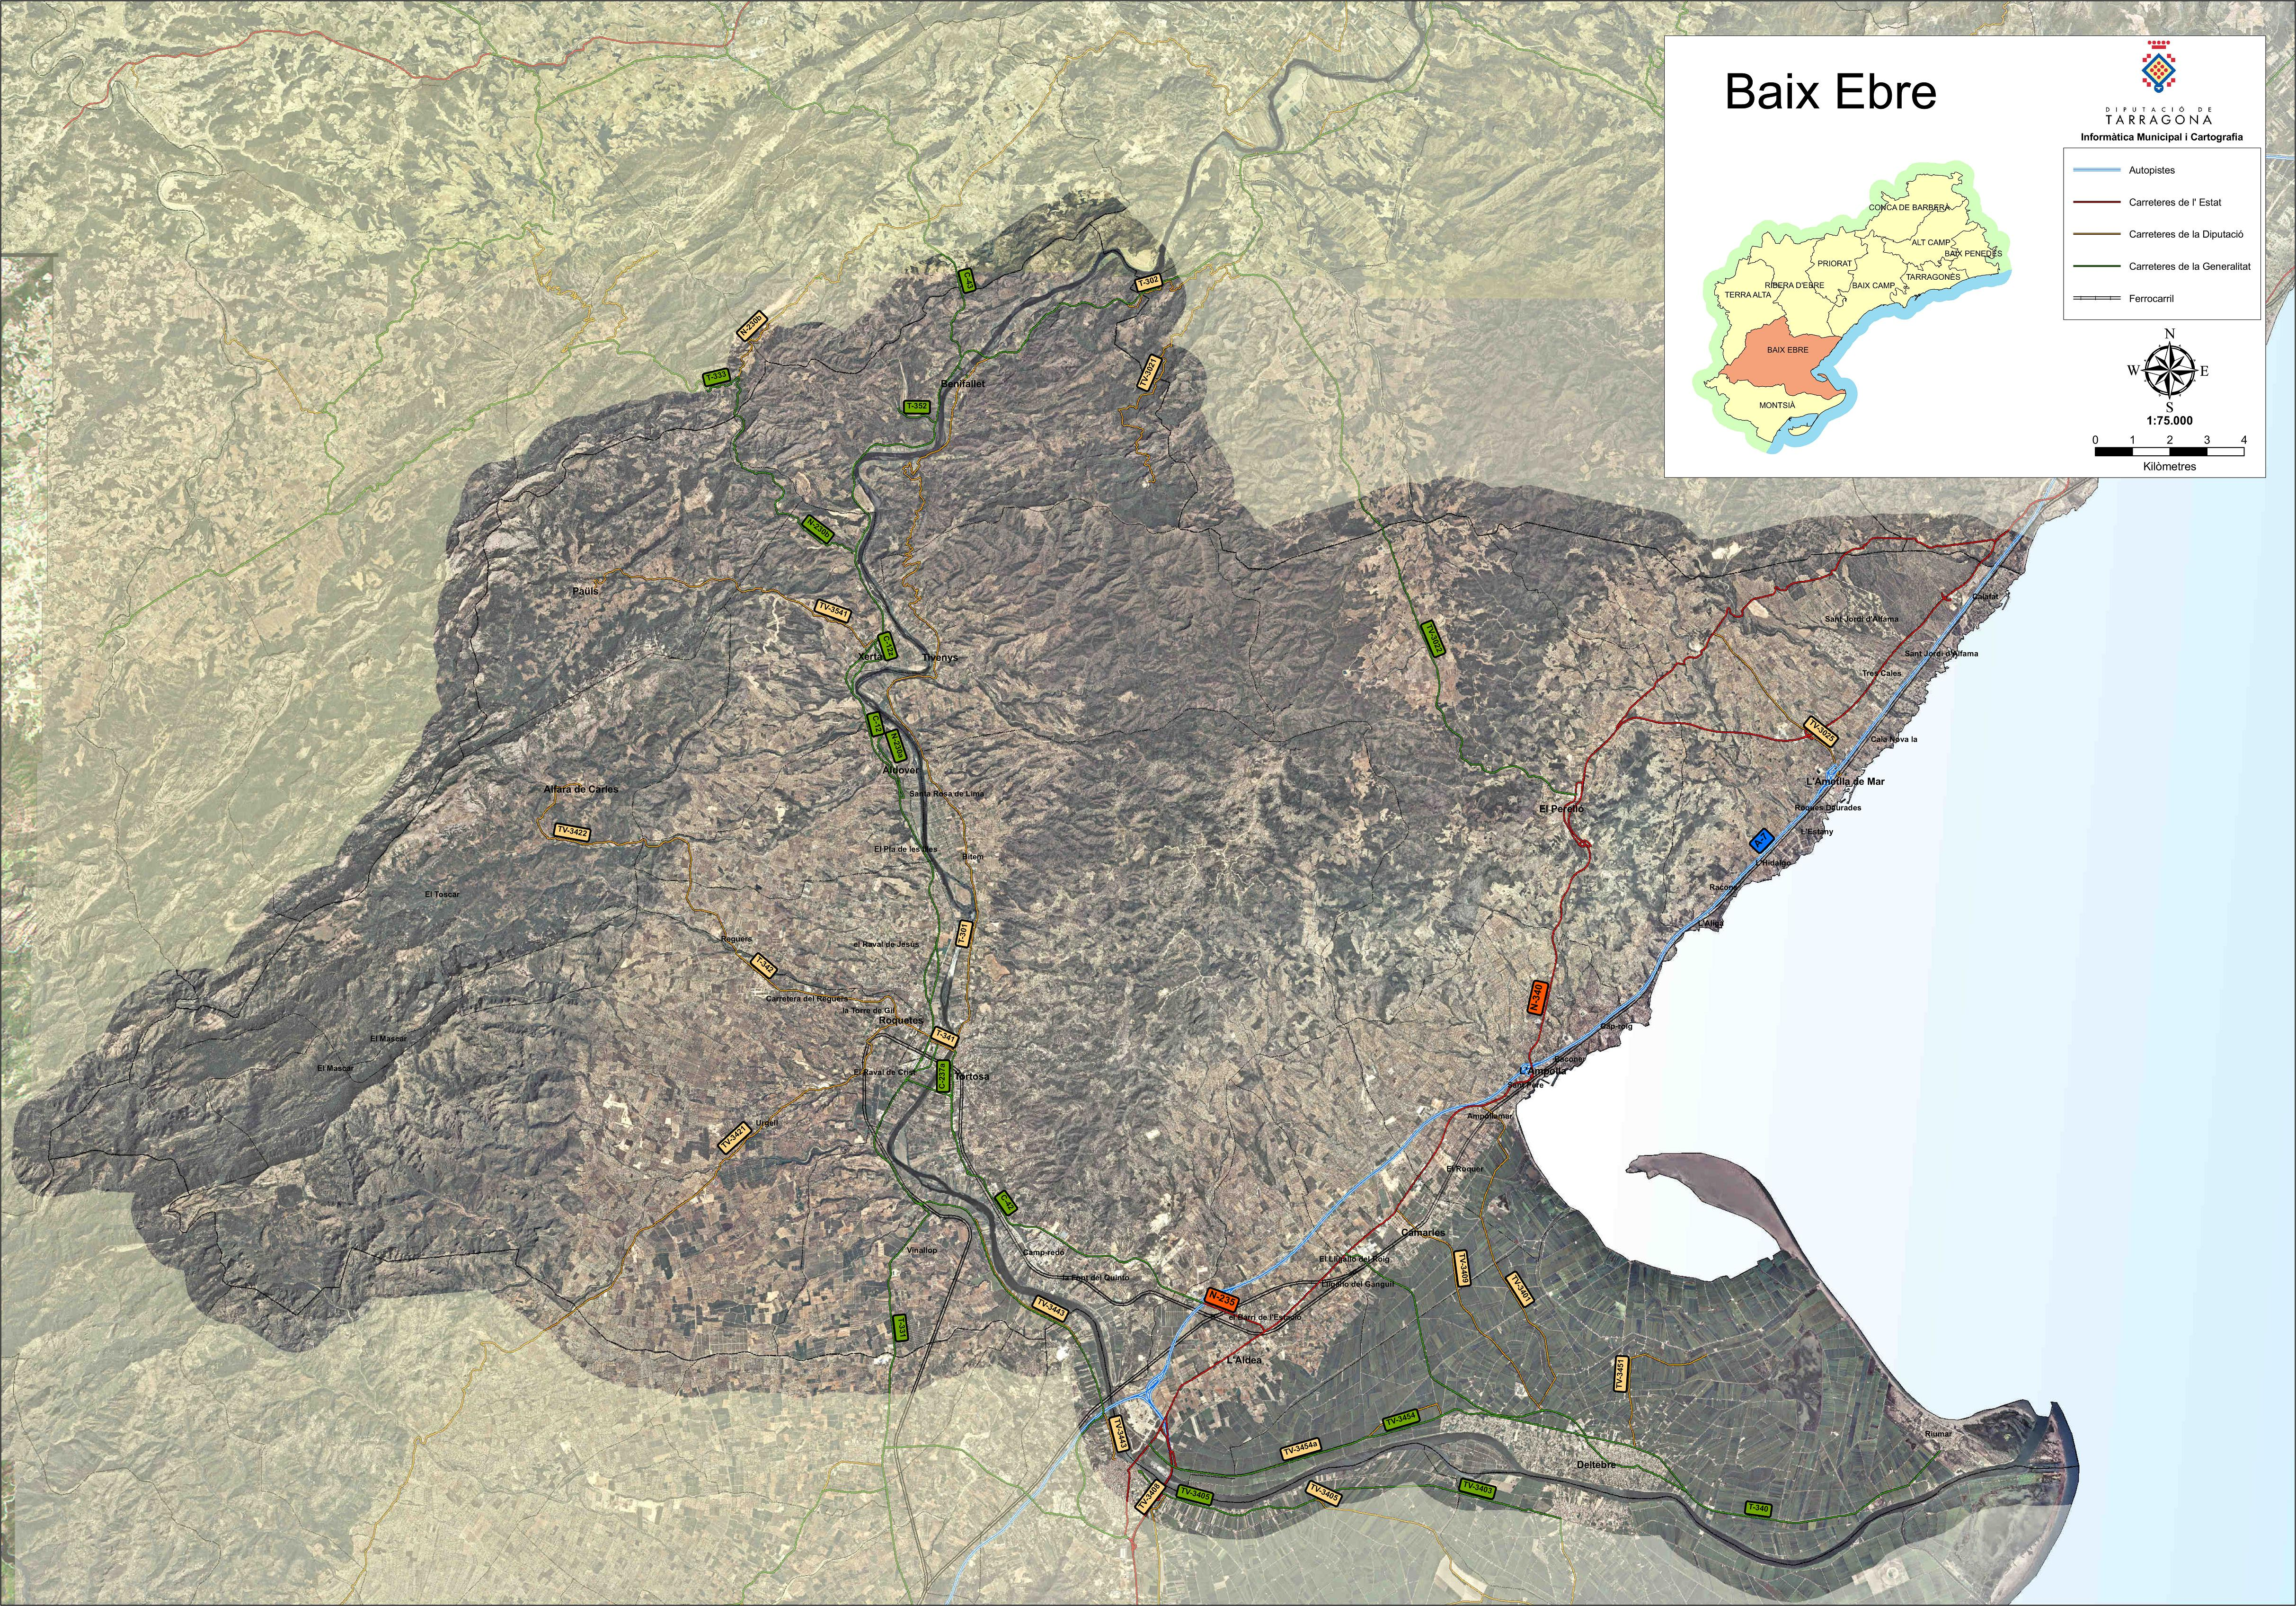 Satellite and road map of the comarca of Baix Ebre